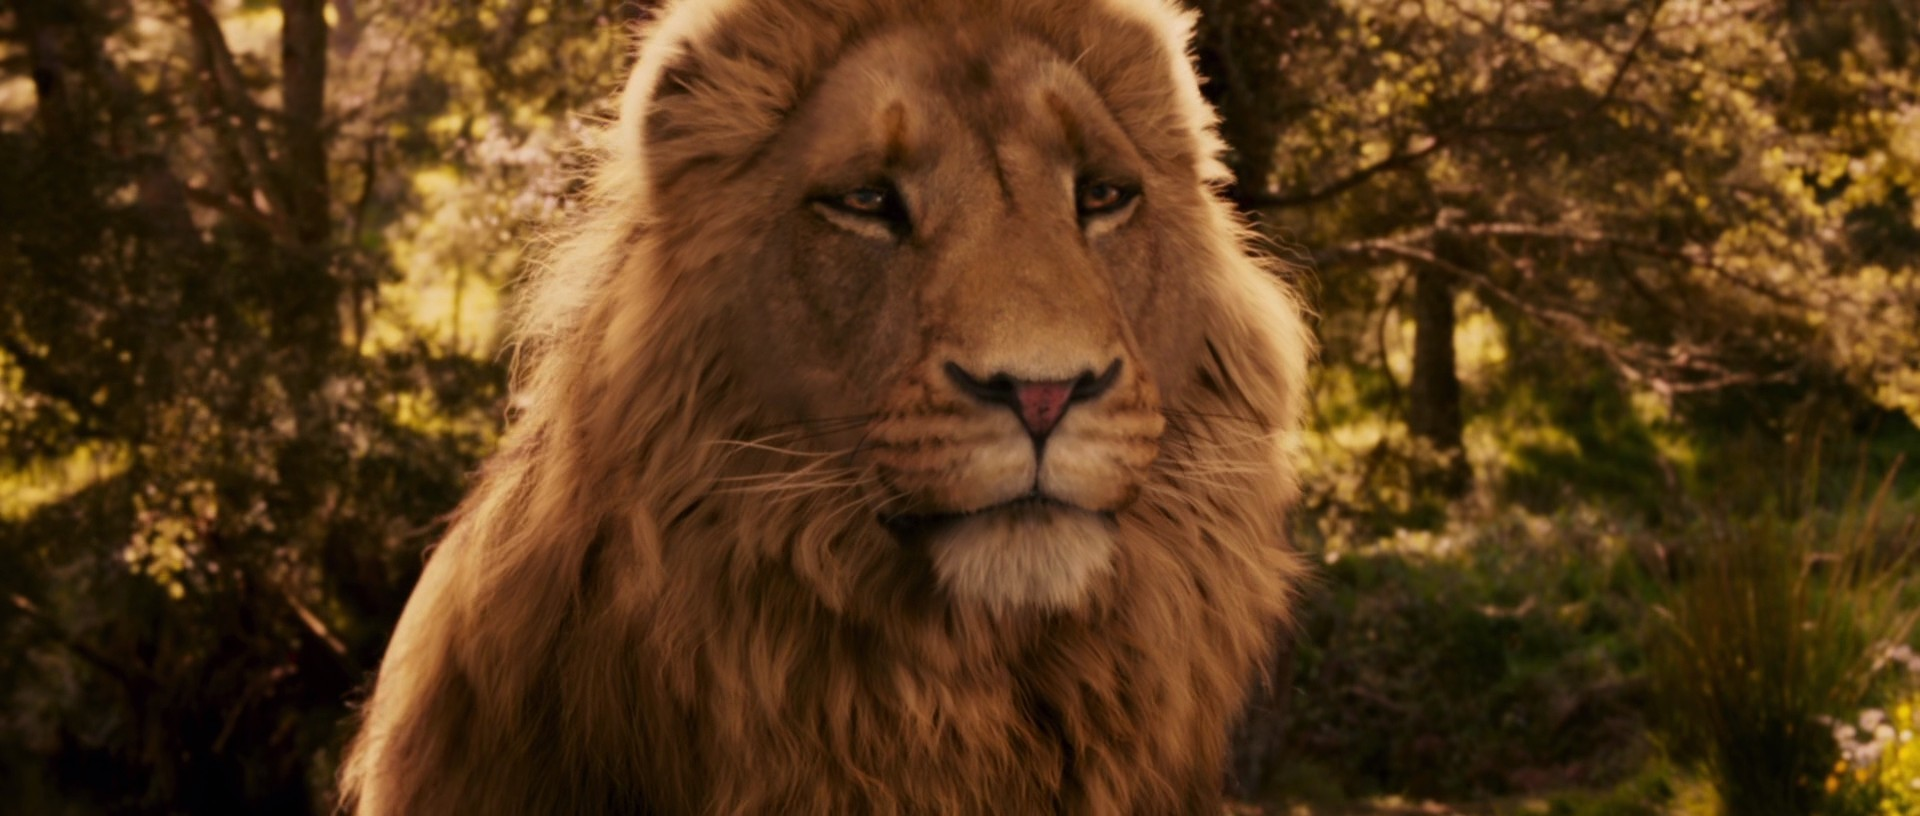 the chronicles of narnia images the chronicles of narnia: the lion